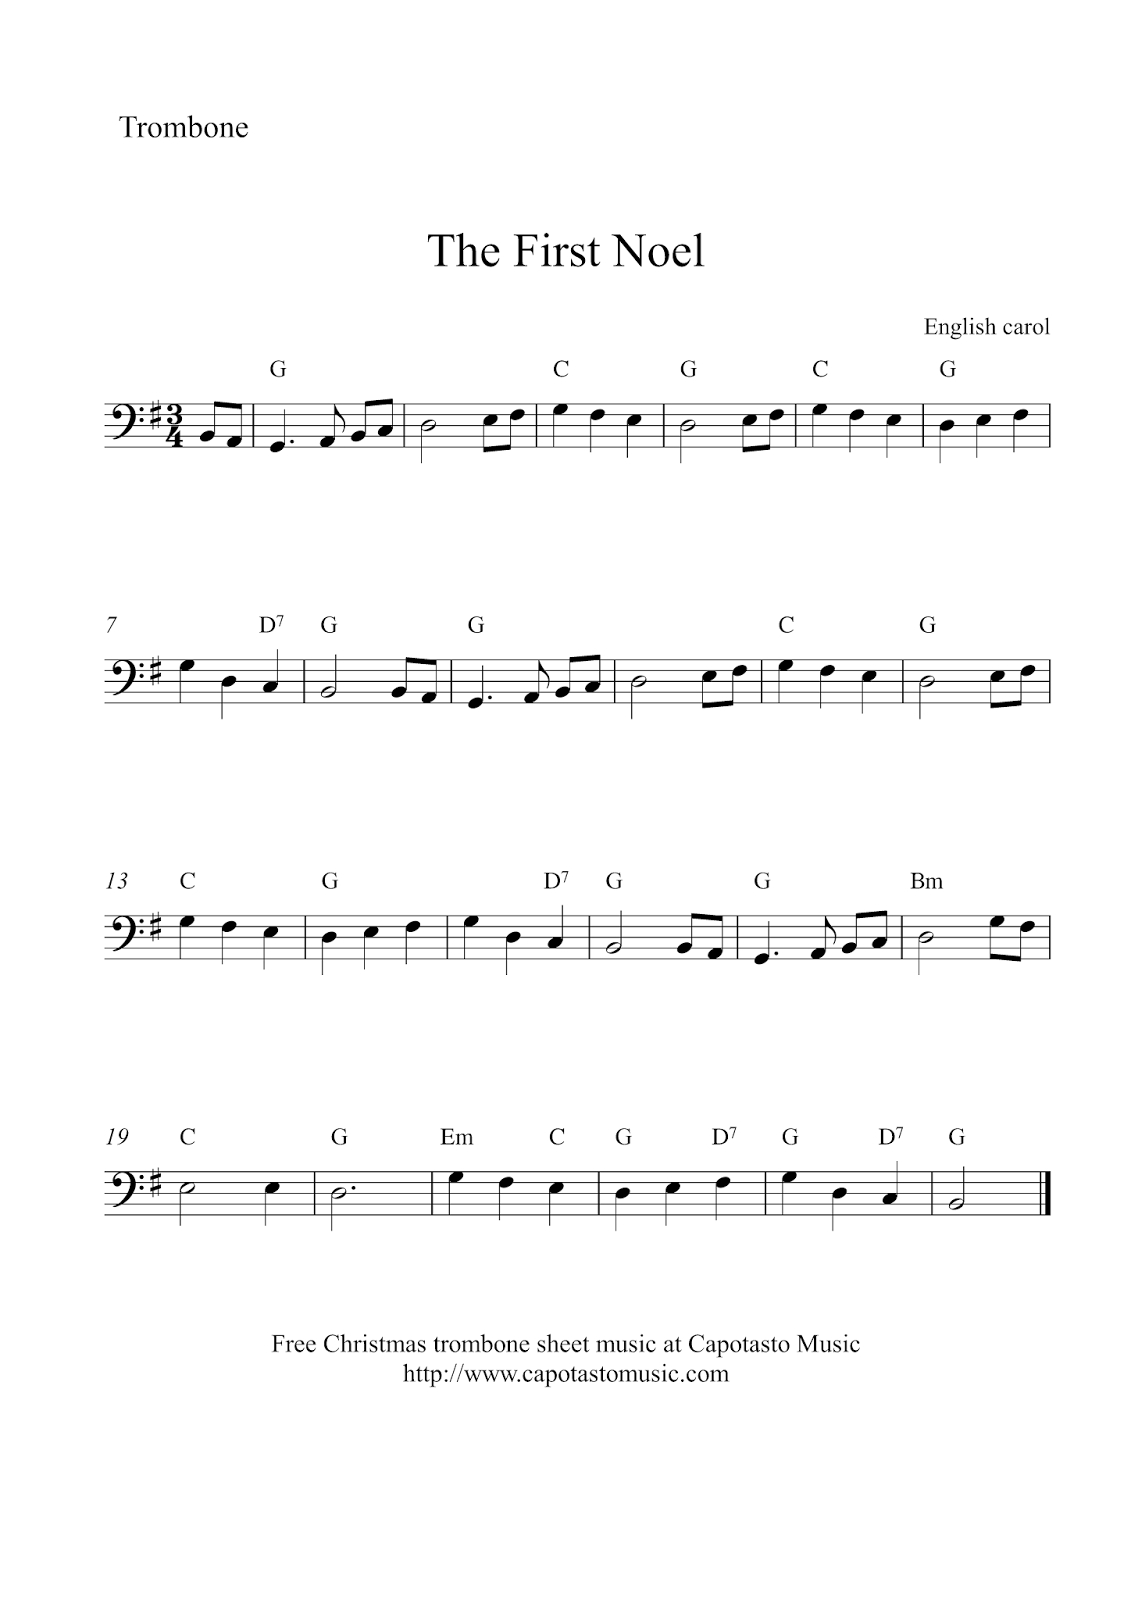 Free Christmas Trombone Sheet Music - The First Noel - Trombone Christmas Sheet Music Free Printable